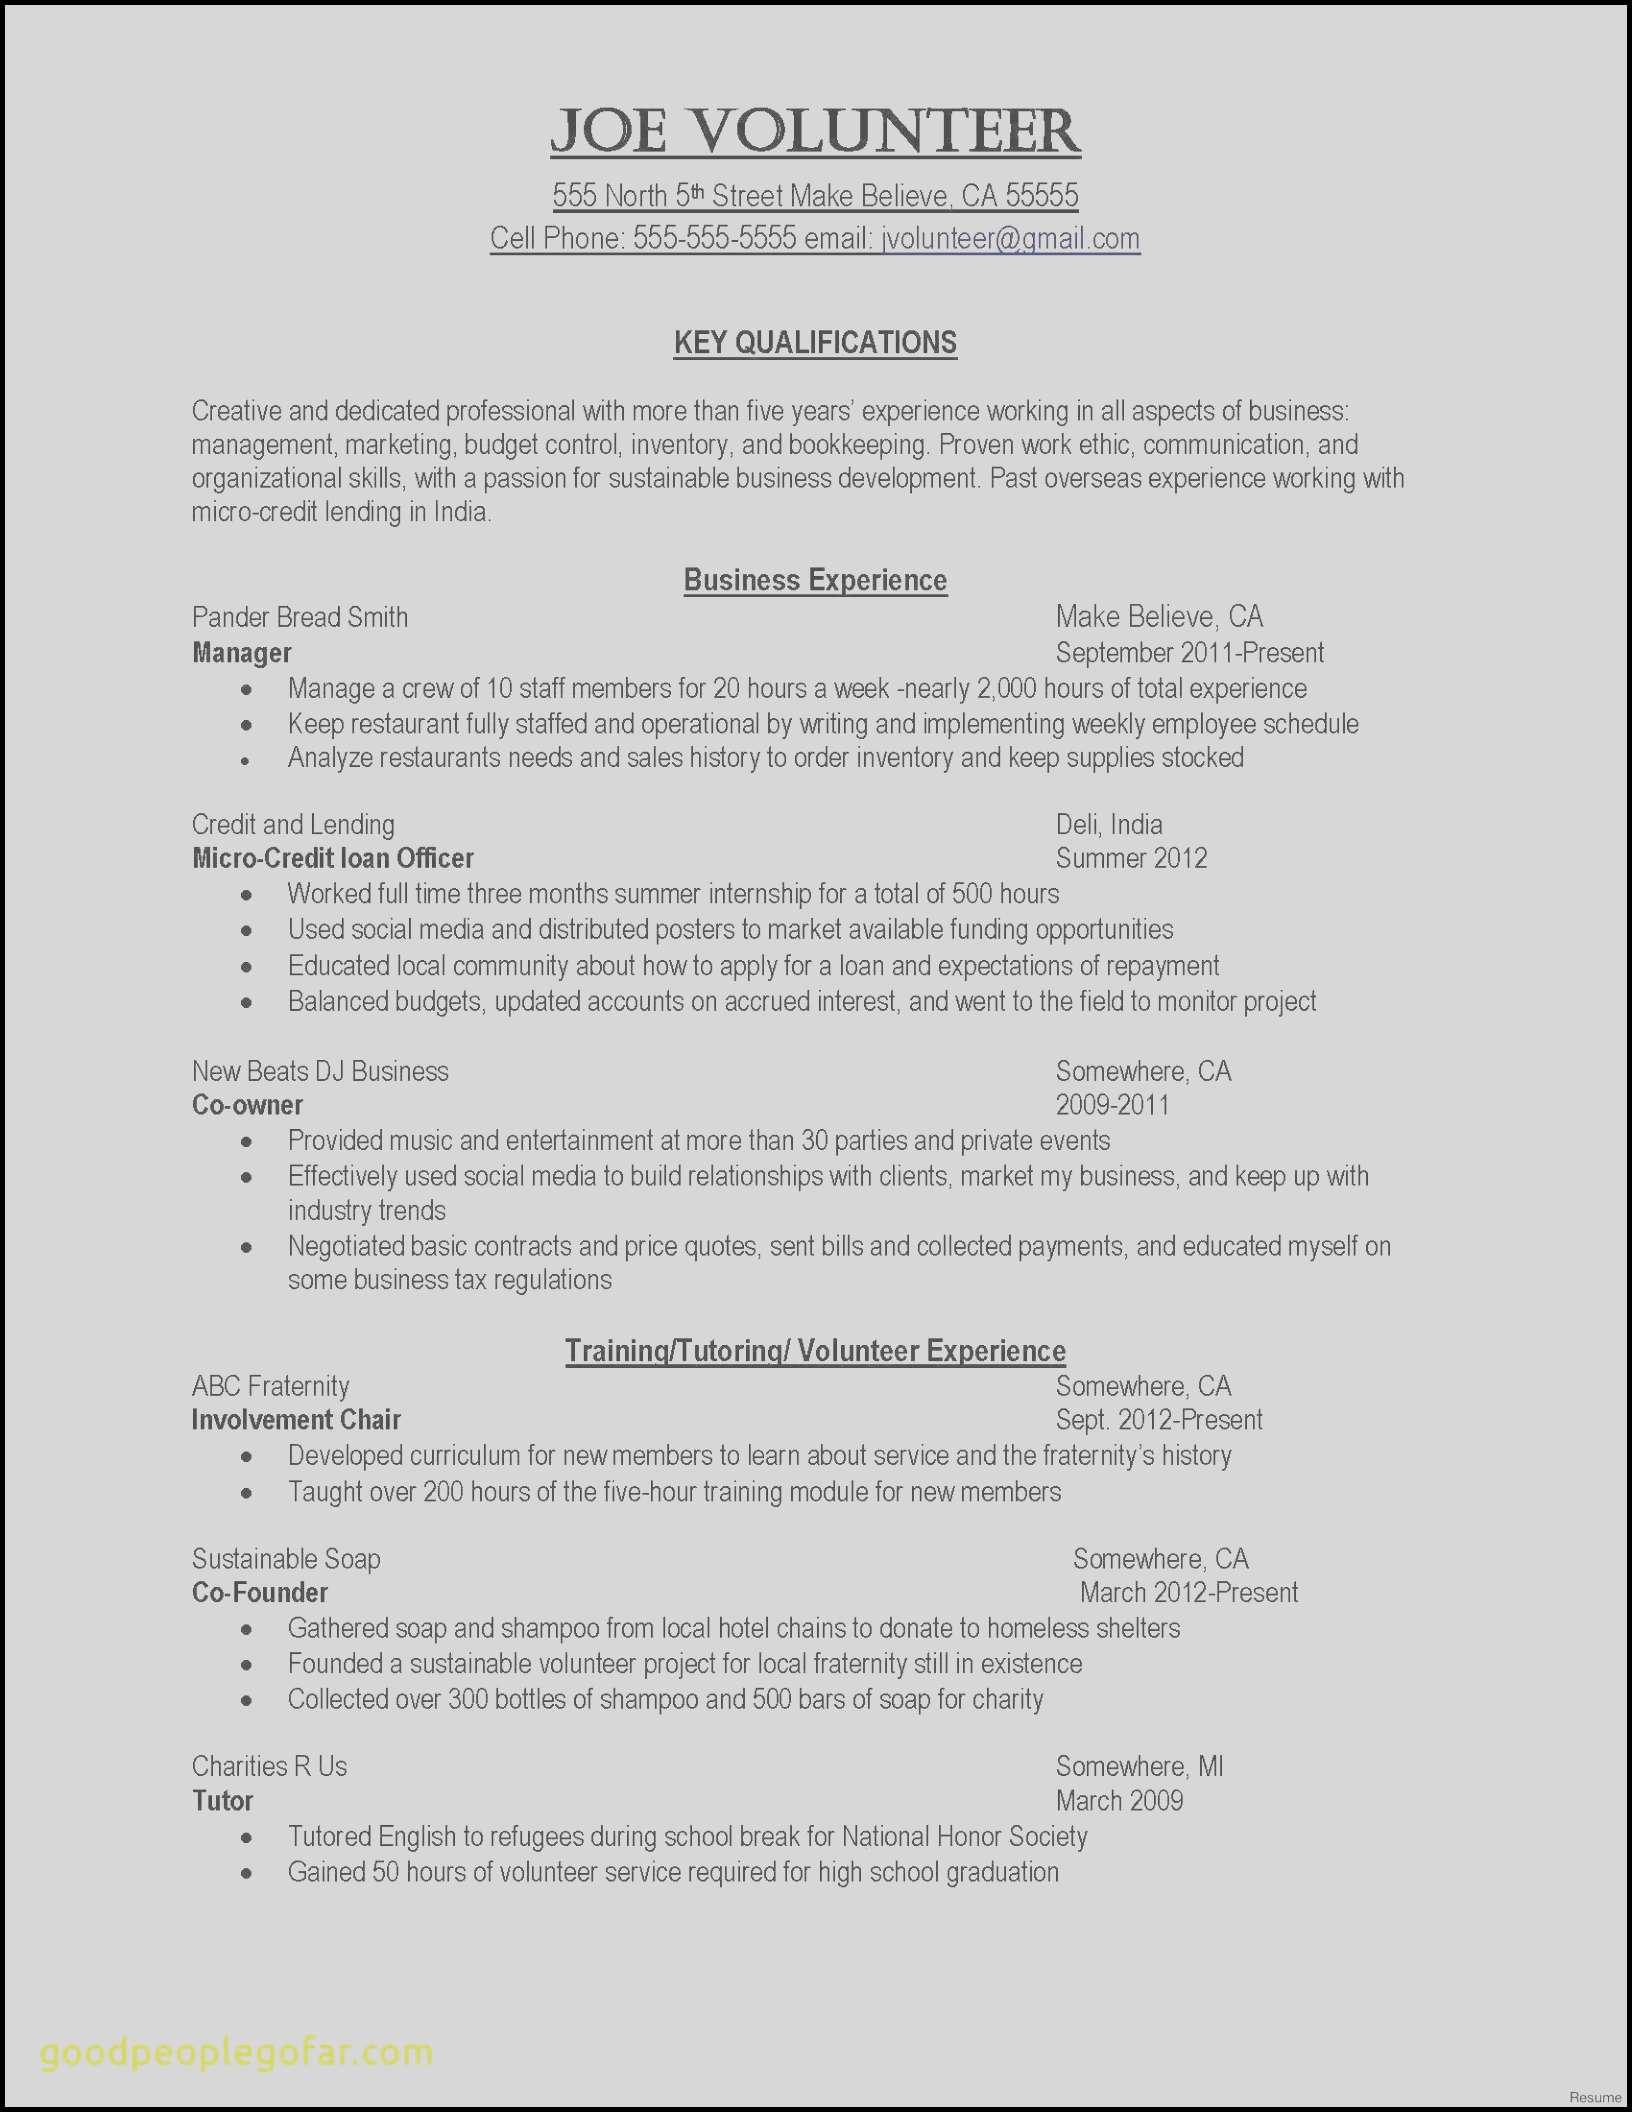 National Honor society Resume Template - Samples Resumes Elegant Cover Letter for Resume Template Awesome